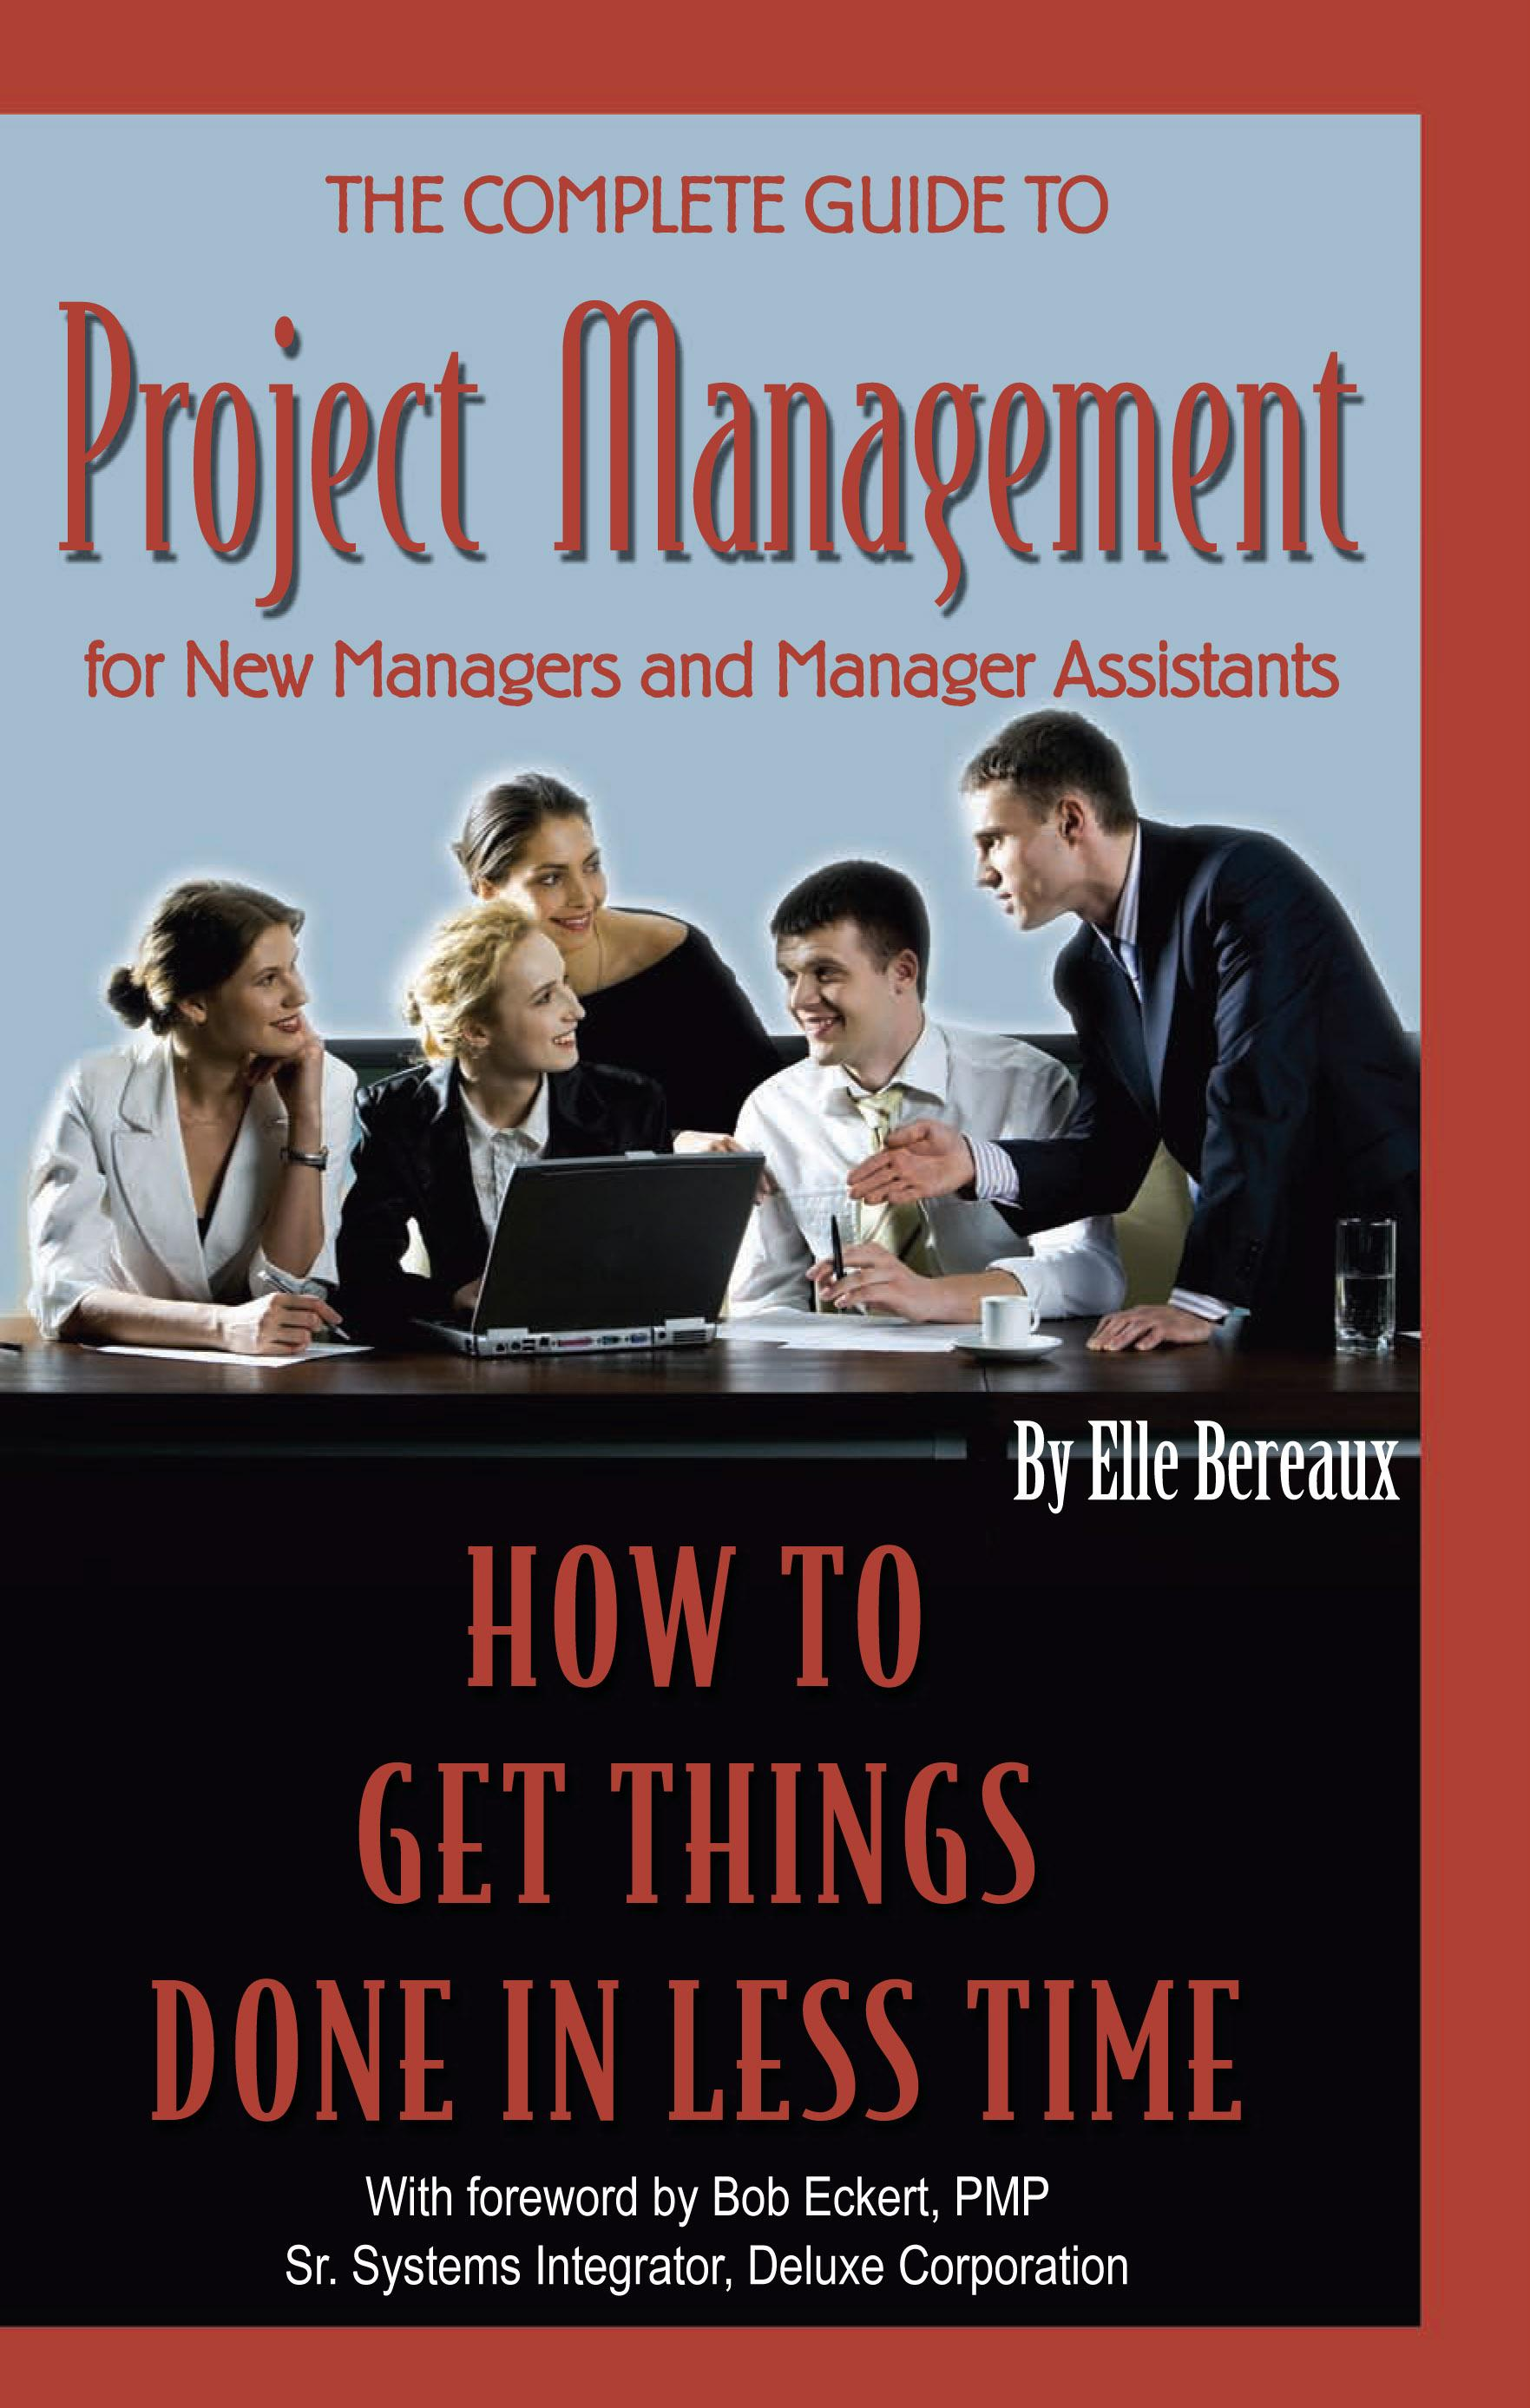 The Complete Guide to Project Management for New Managers and Management Assistants: How to Get Things Done in Less Time EB9787772504103